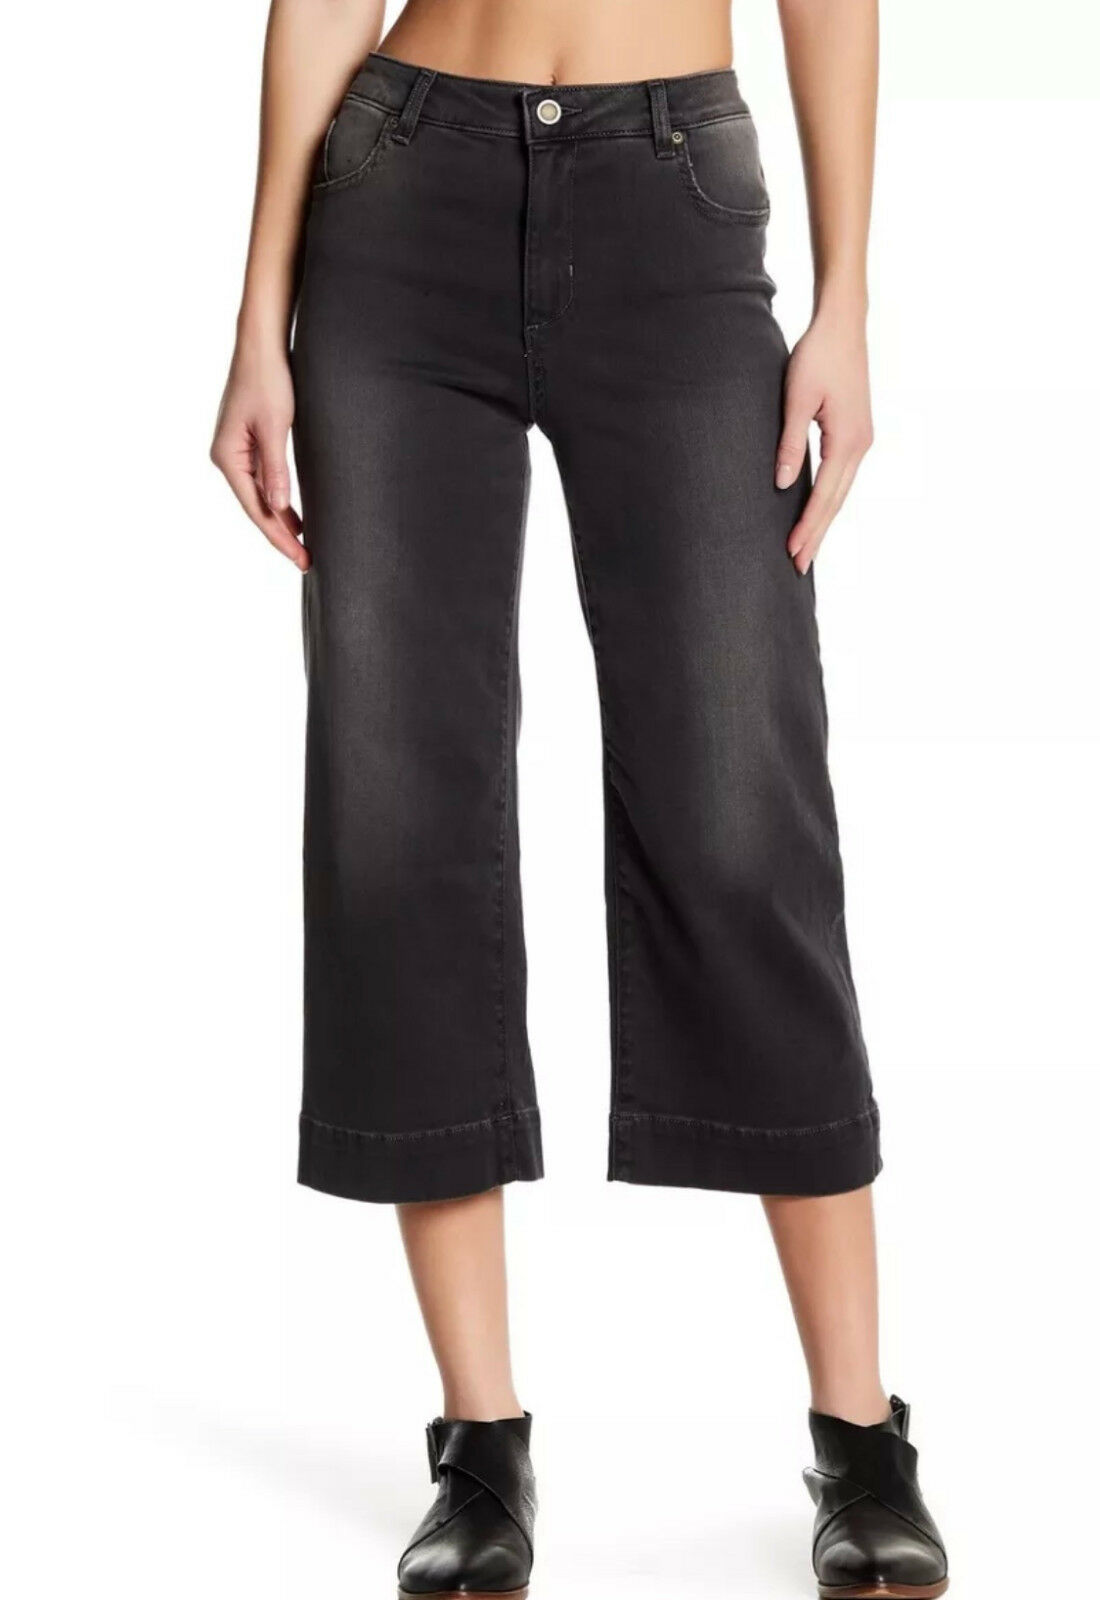 Fine by Superfine Shiver Wide Leg Cropped Denim Jeans, Zip fly, Size 24  248 NWT